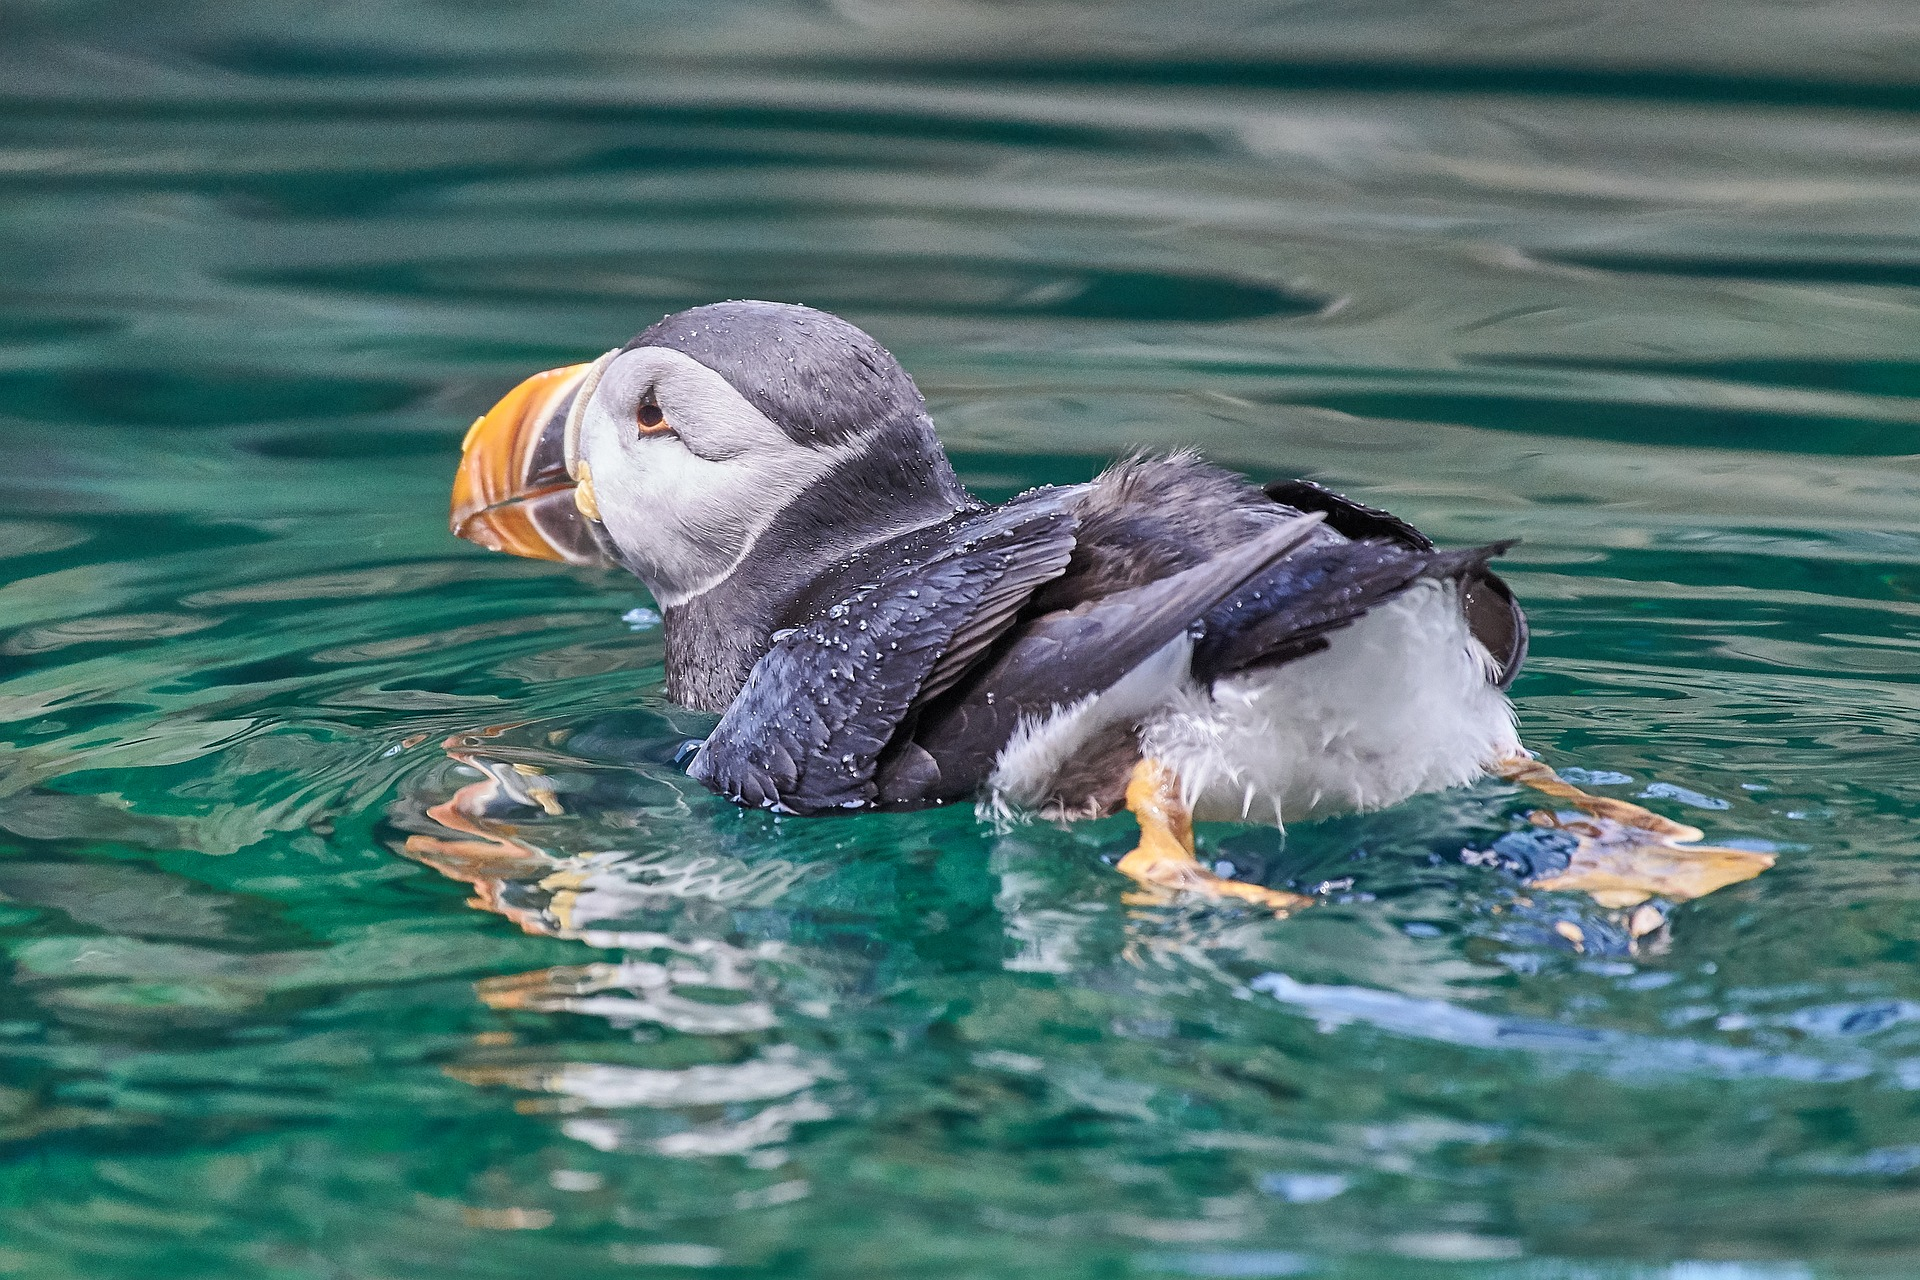 Puffin bathing in the sea